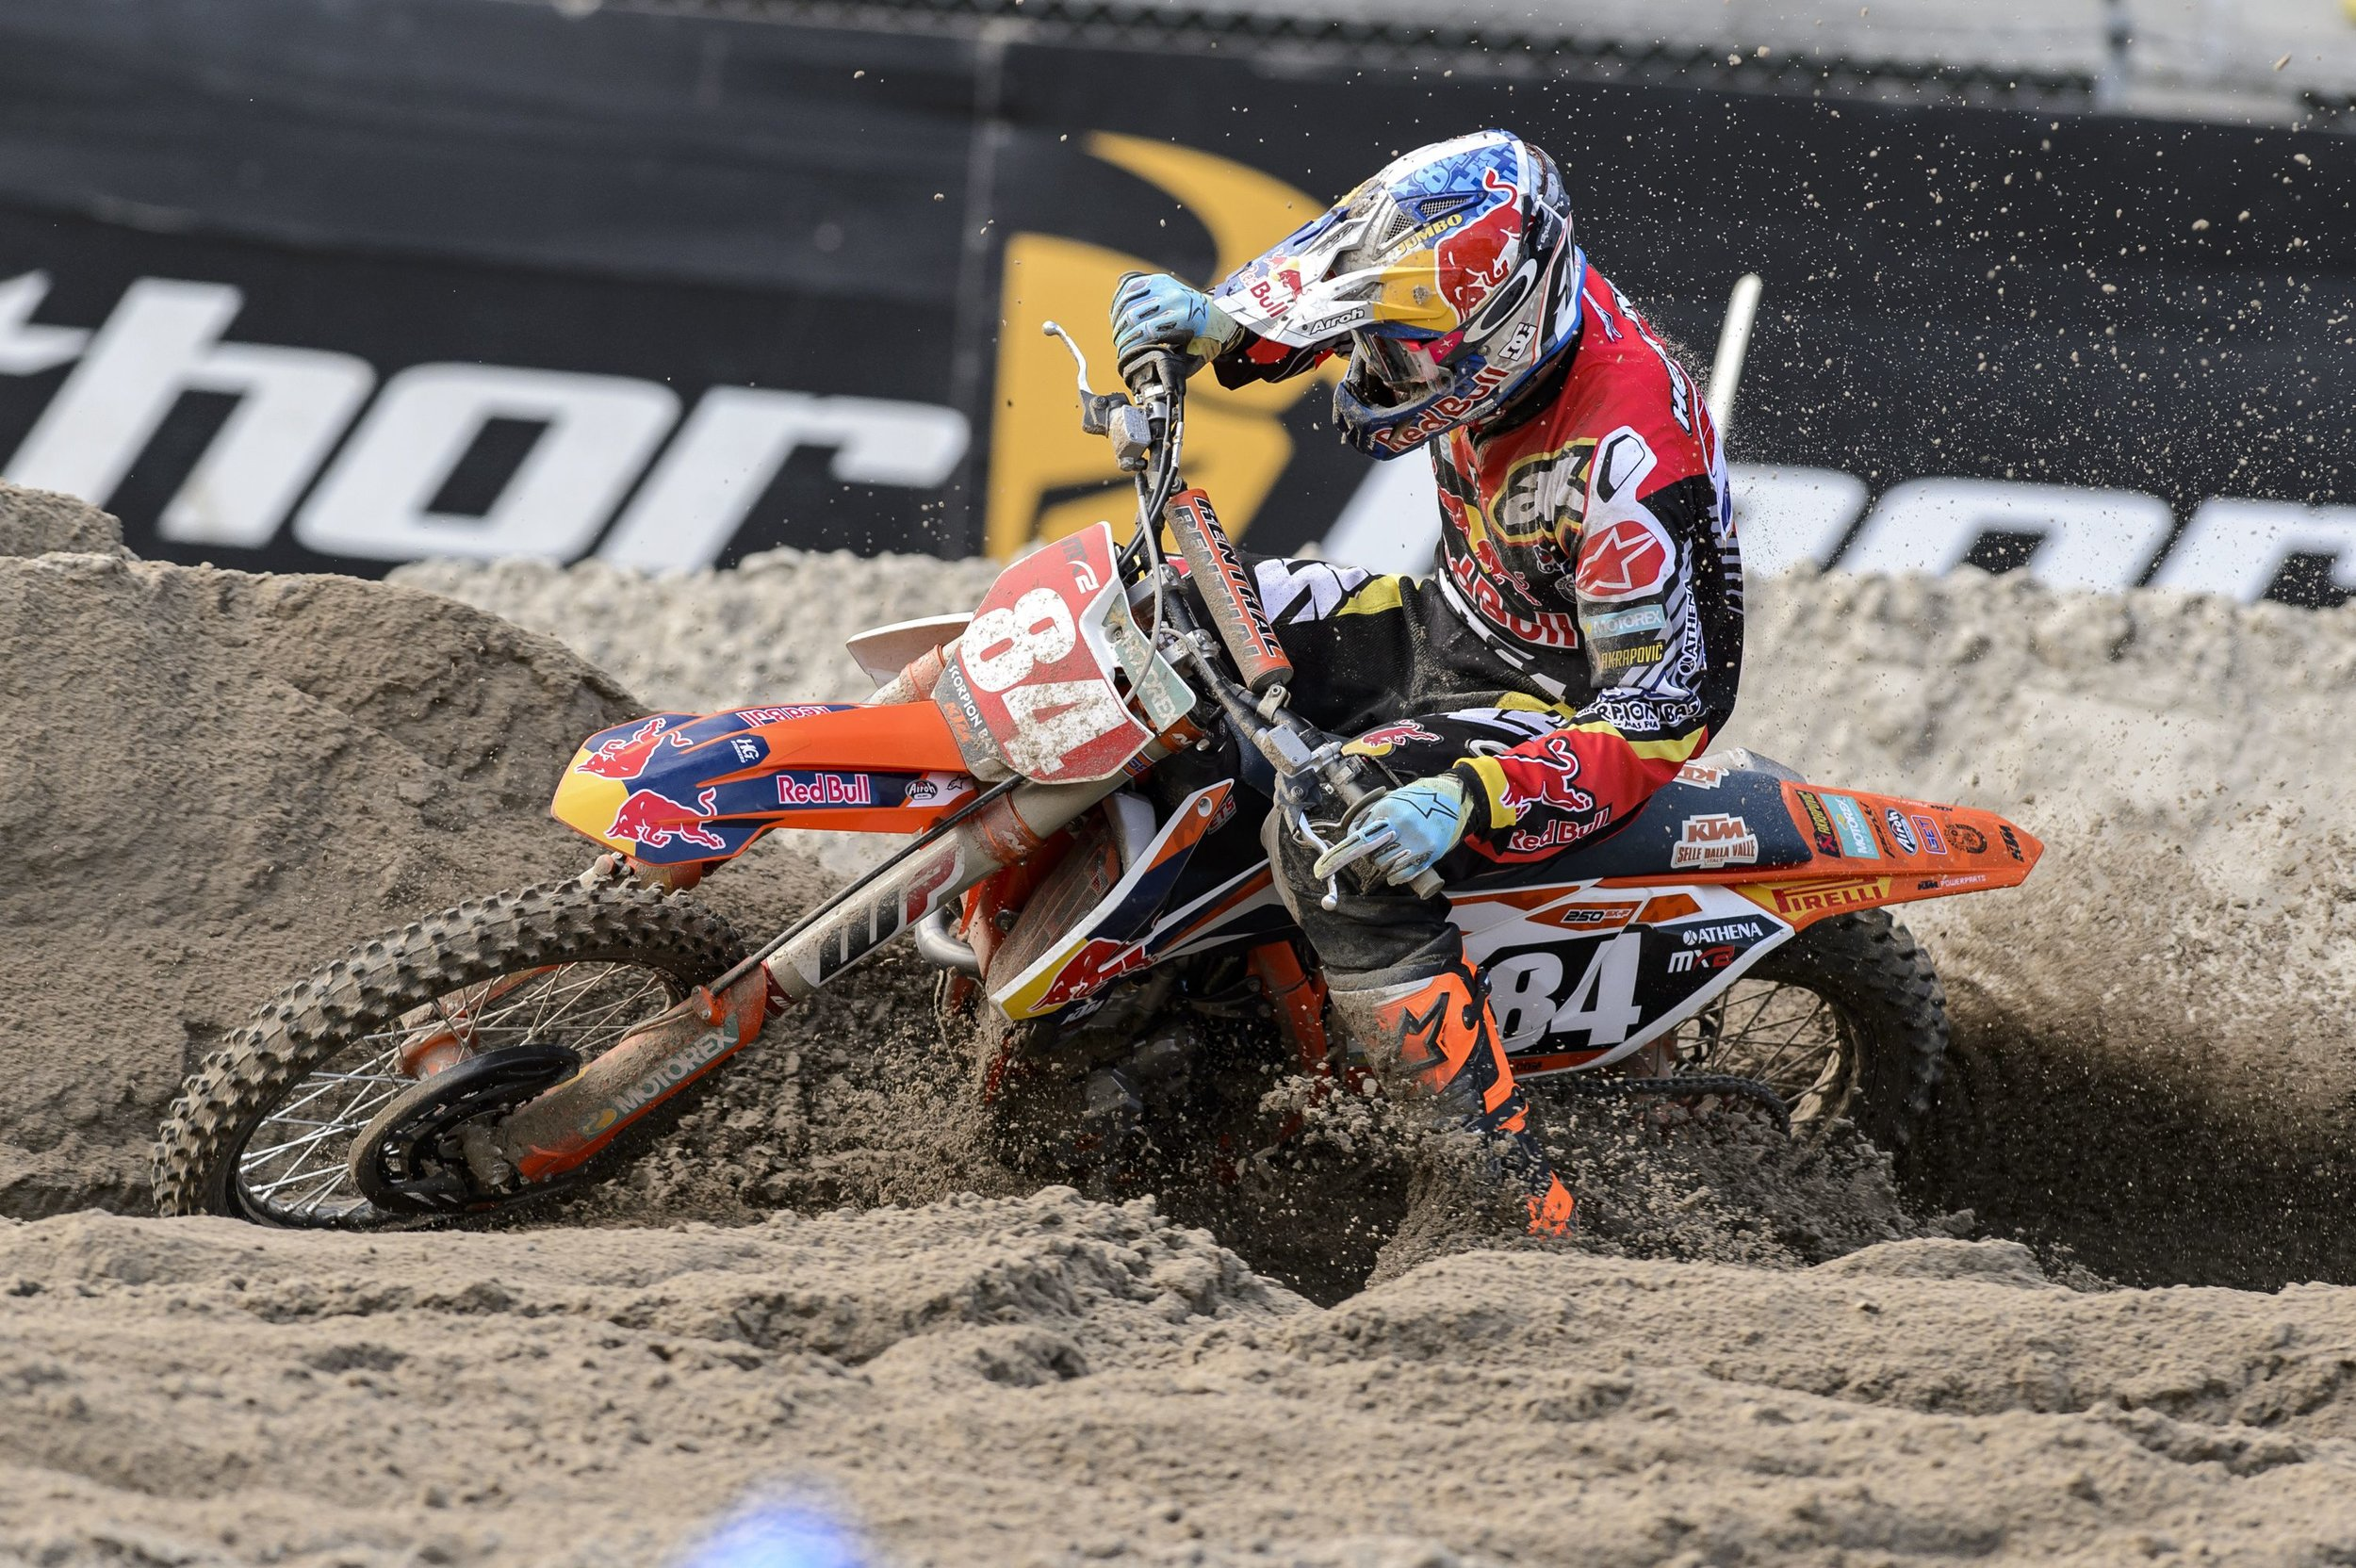 2016_MX2_herlings_MX2.jpg